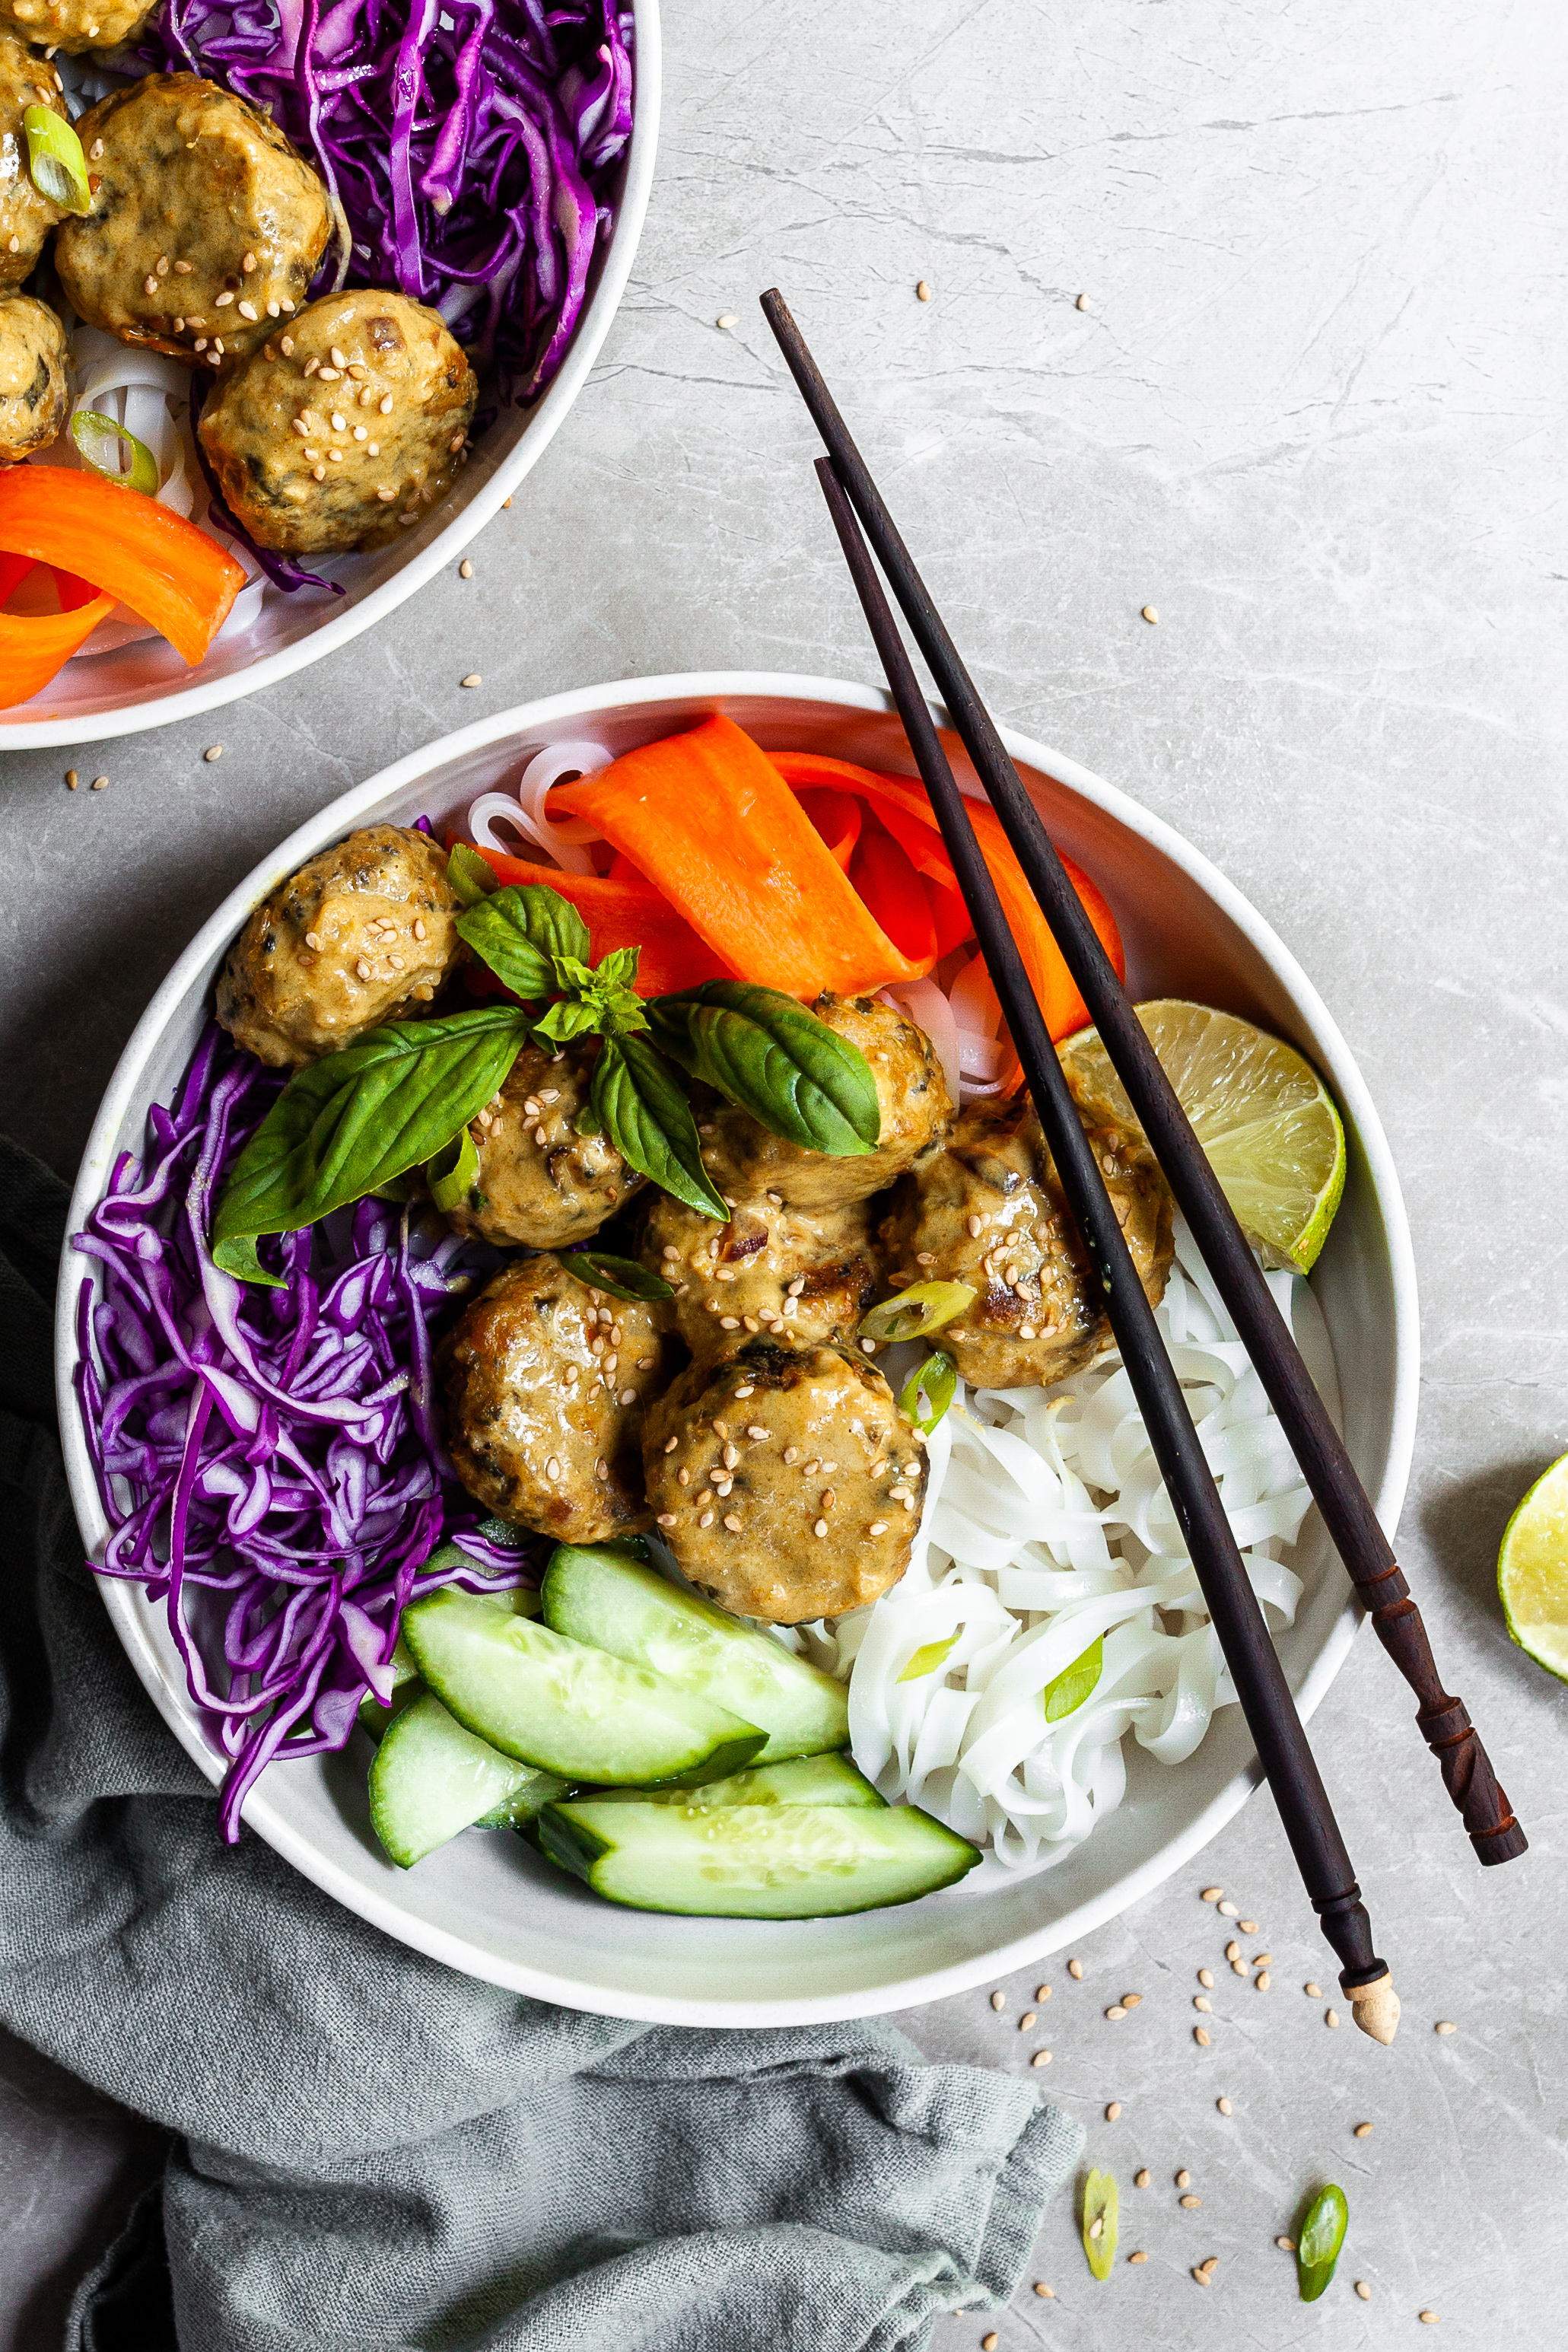 White bowl and chopsticks with rice noodles, chcikpea balls covered in yellow curry sauce, and raw veggies